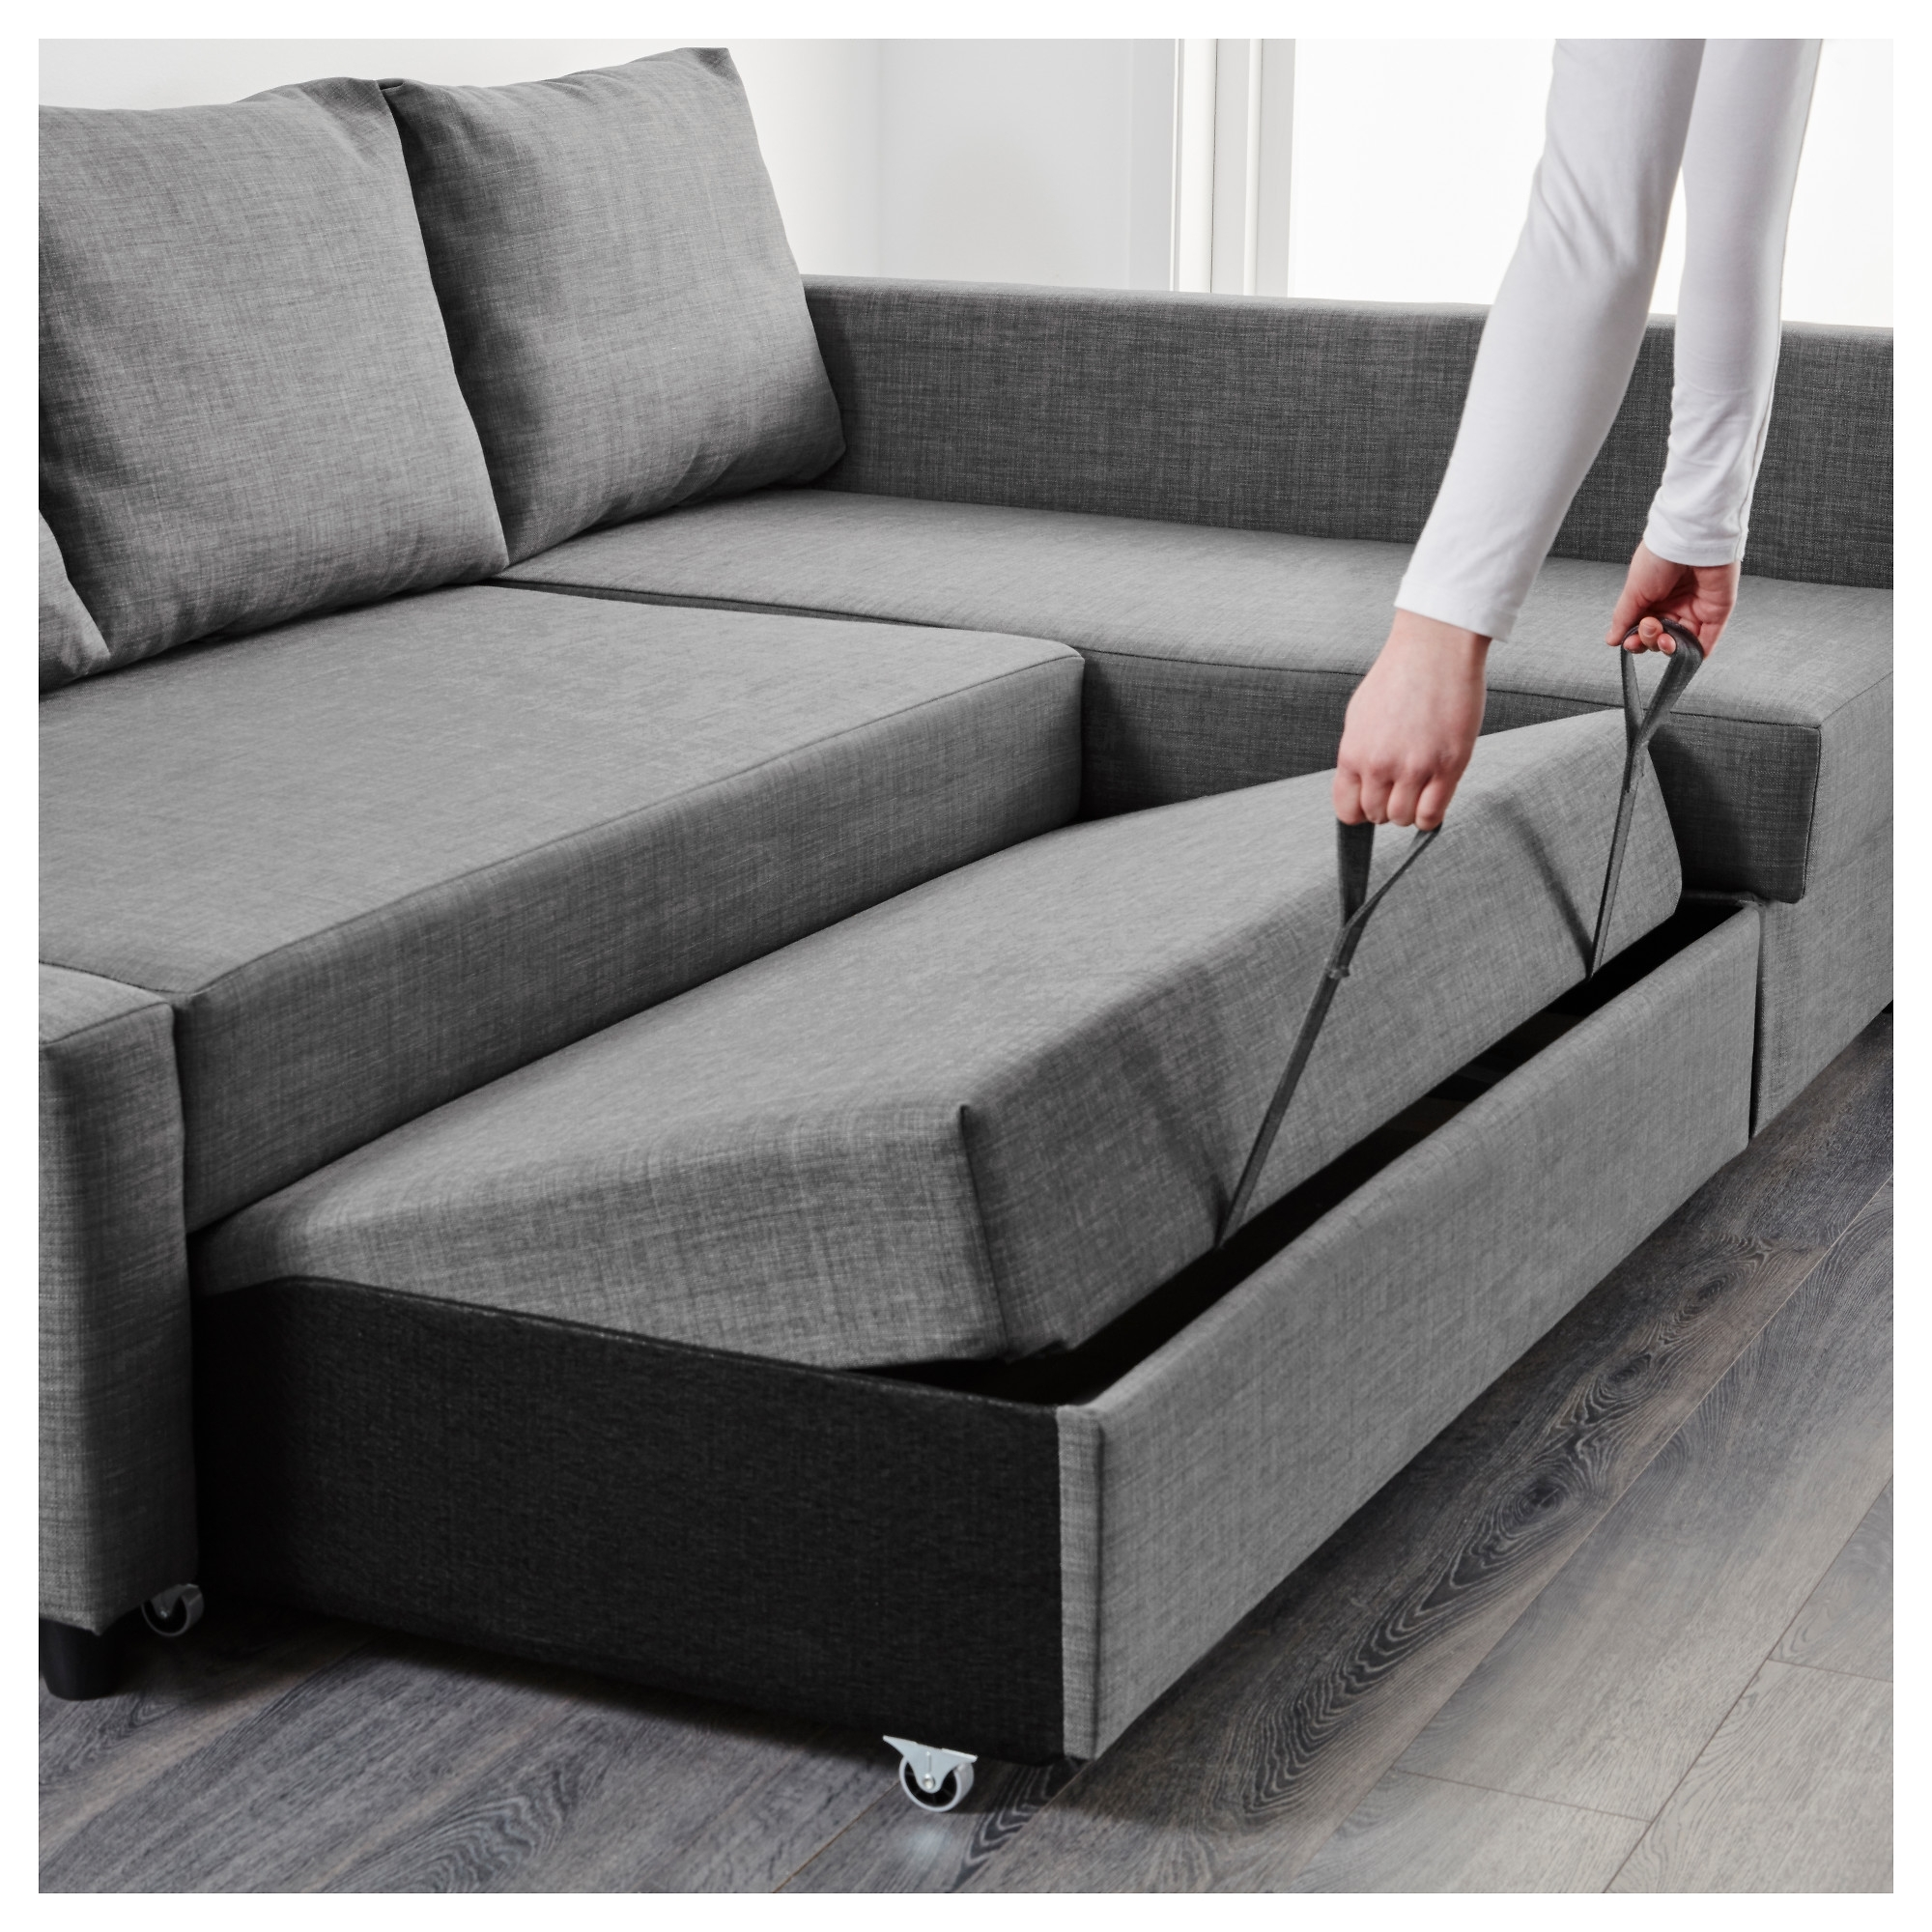 Ikea Chaise Sofas Pertaining To Famous Friheten Corner Sofa Bed With Storage Skiftebo Dark Grey – Ikea (View 5 of 15)